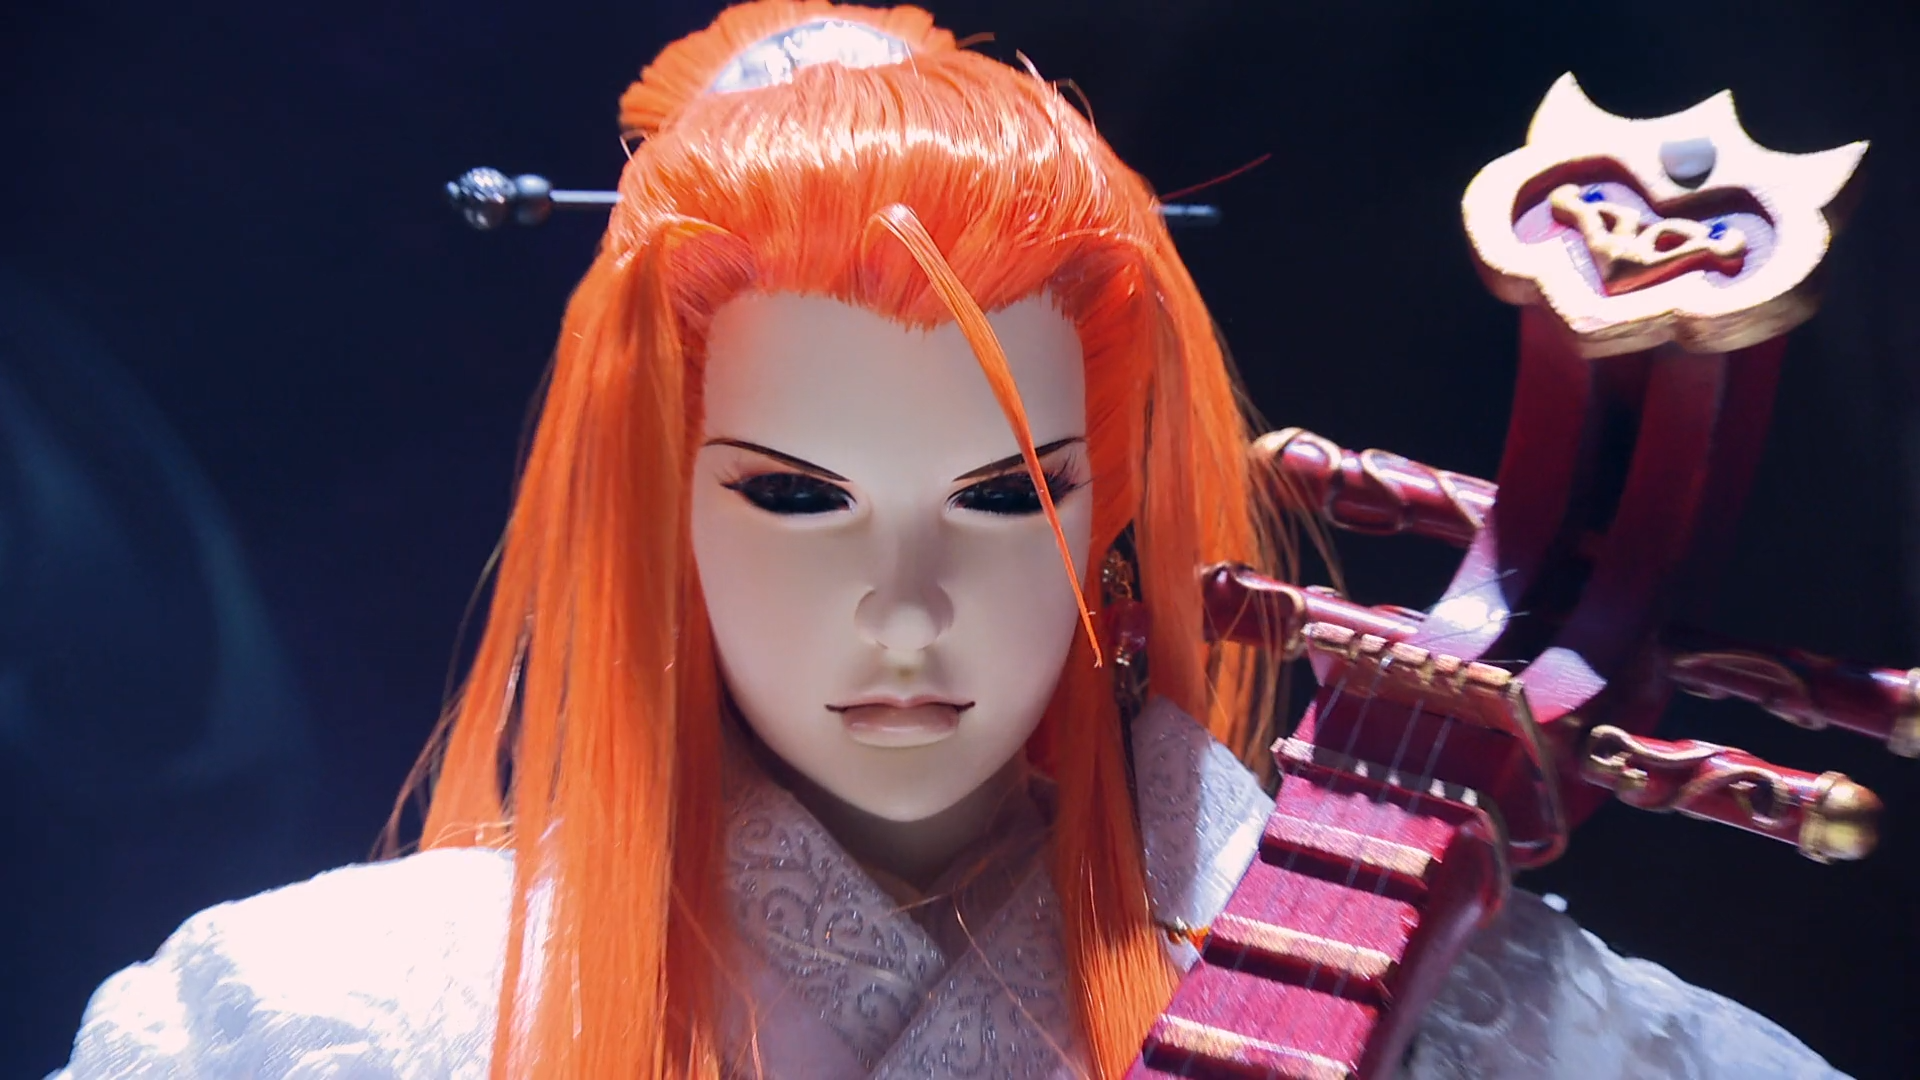 Lang Wu Yao's heavenly performance is interrupted by a raid from the Imperial police in a scene from the Thunderbolt Fantasy -Bewitching Melody of the West- theatrical film.